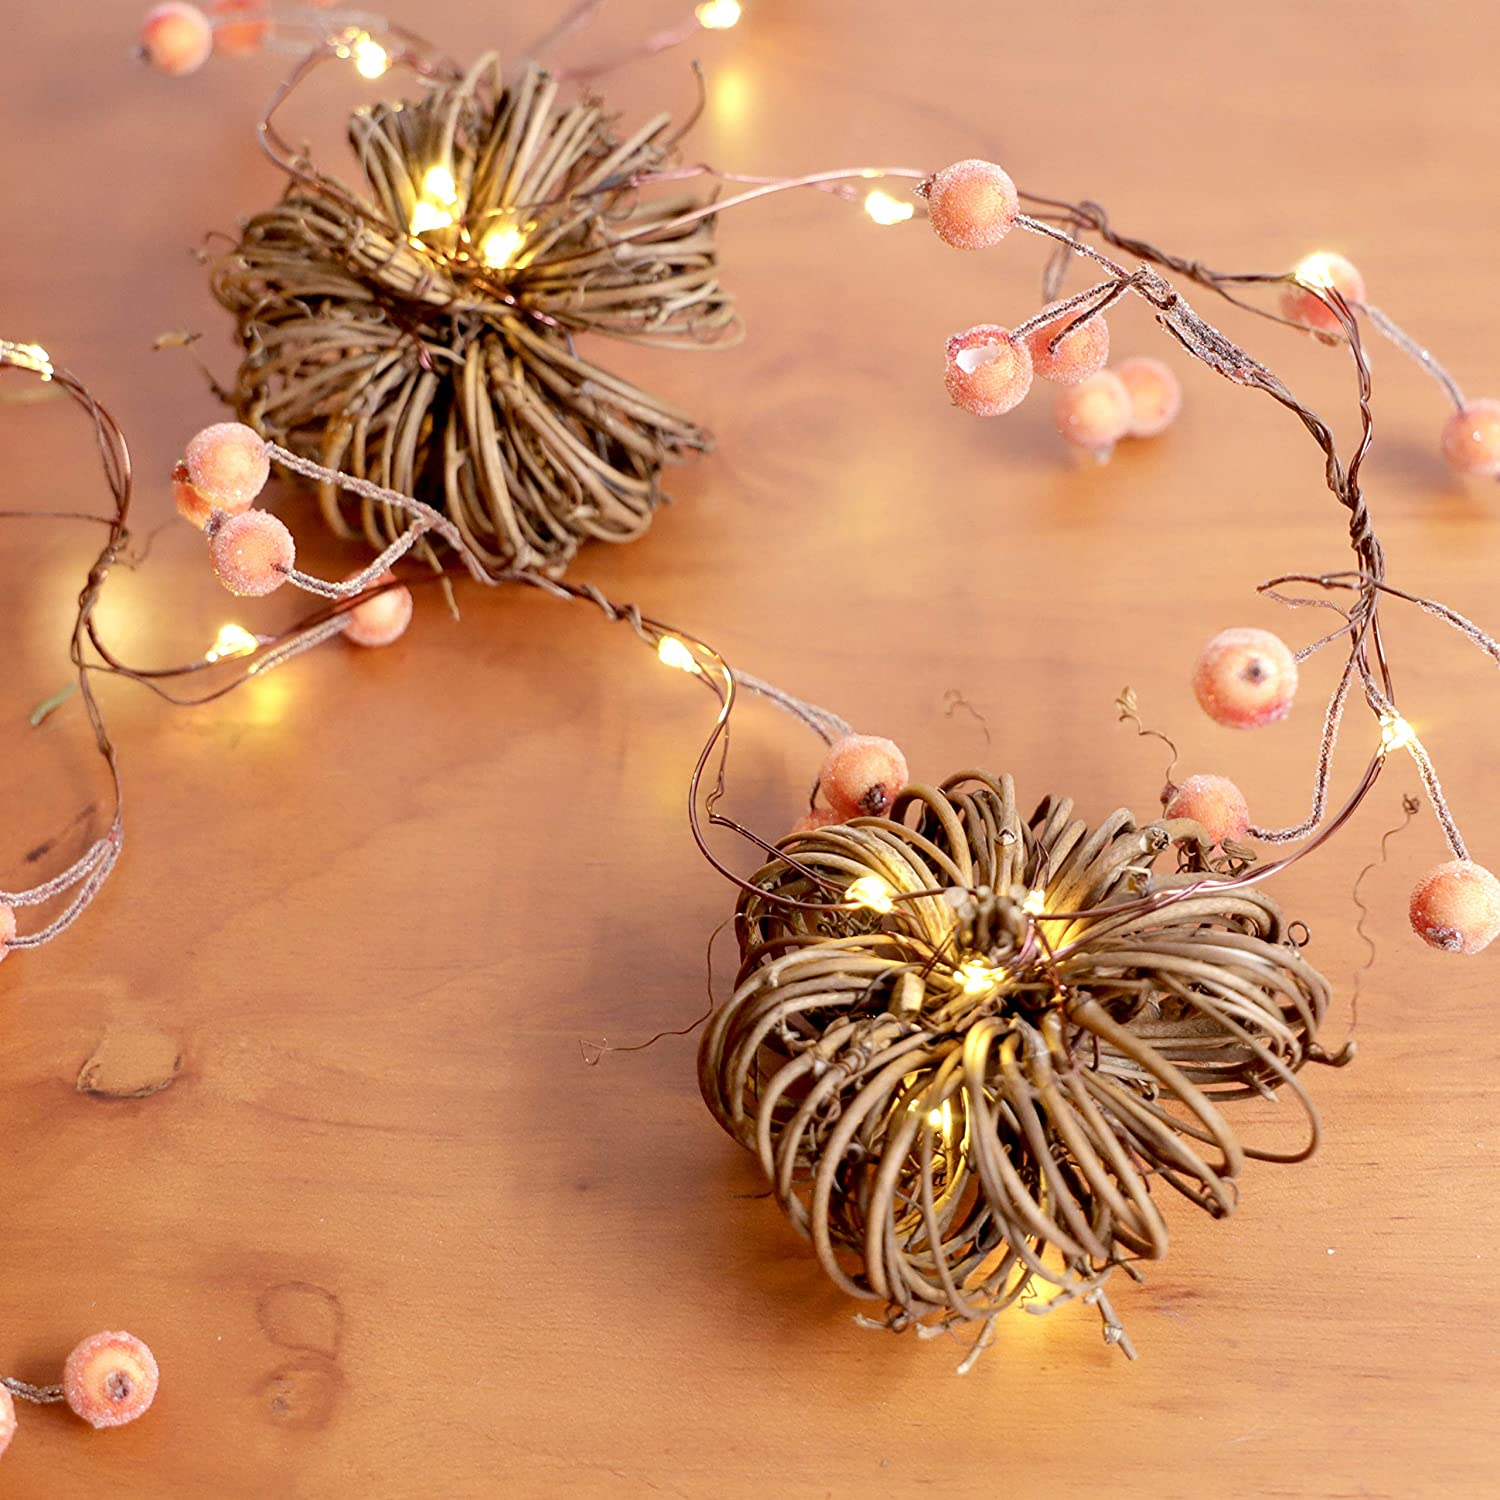 MIYA LIFE Rattan Pumpkin Berry String Lights 10ft 30LEDs Hand Made with The Remote & Timer for Thanksgiving Halloween Christmas Birthday Gift Autumn Indoor Outdoor Parties Home Bedroom Decoration